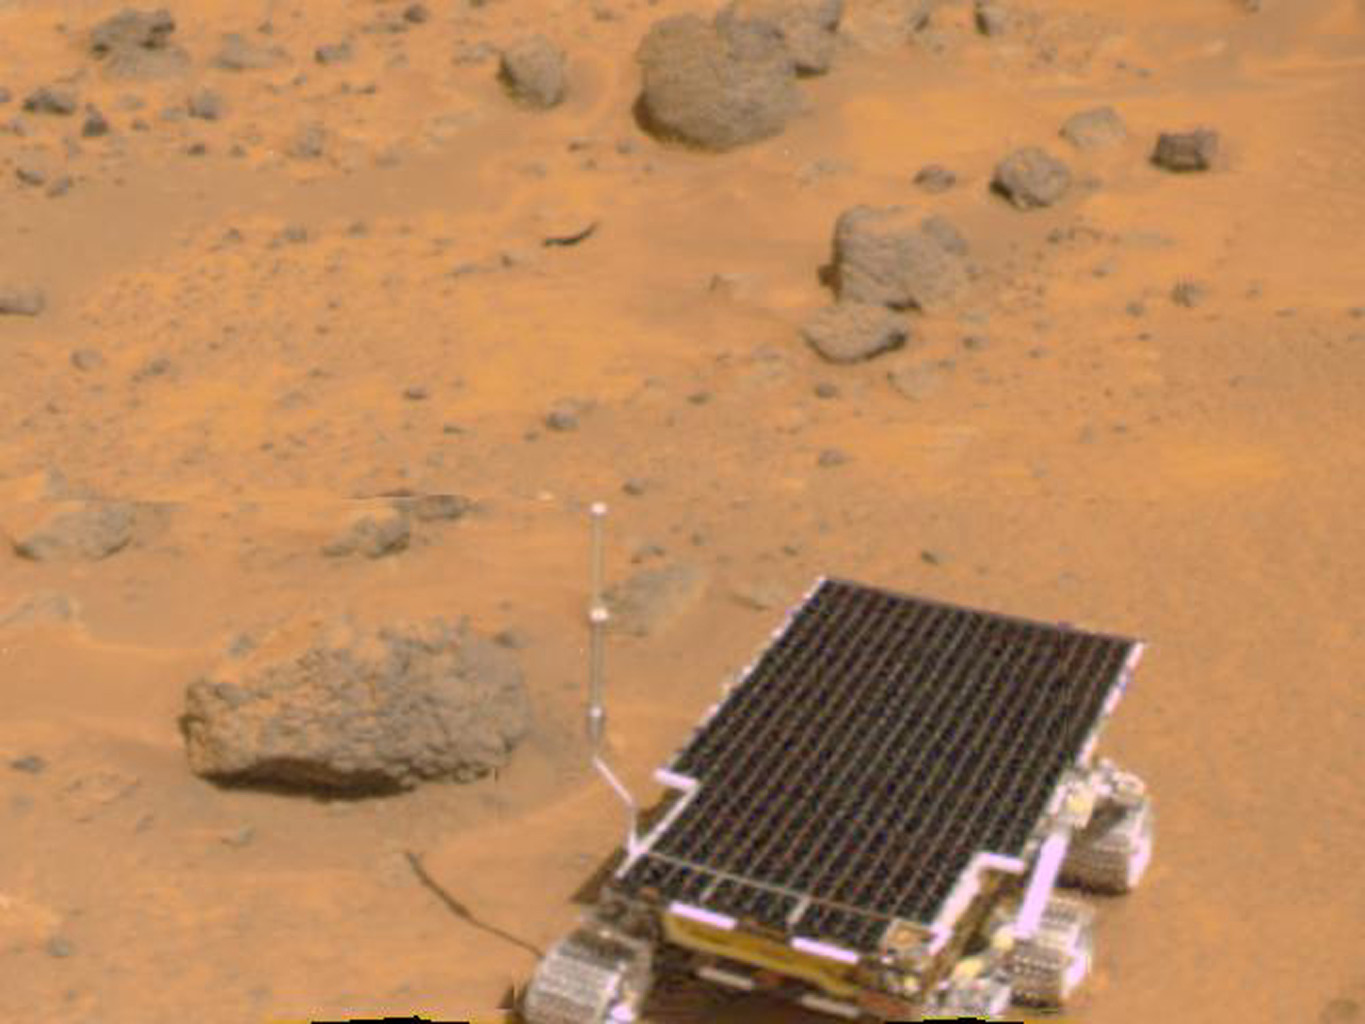 The Mars rover Sojourner is visible in this color image, one of the first taken by the deployed NASA's Imager for Mars Pathfinder (IMP) on July 7, 1997.